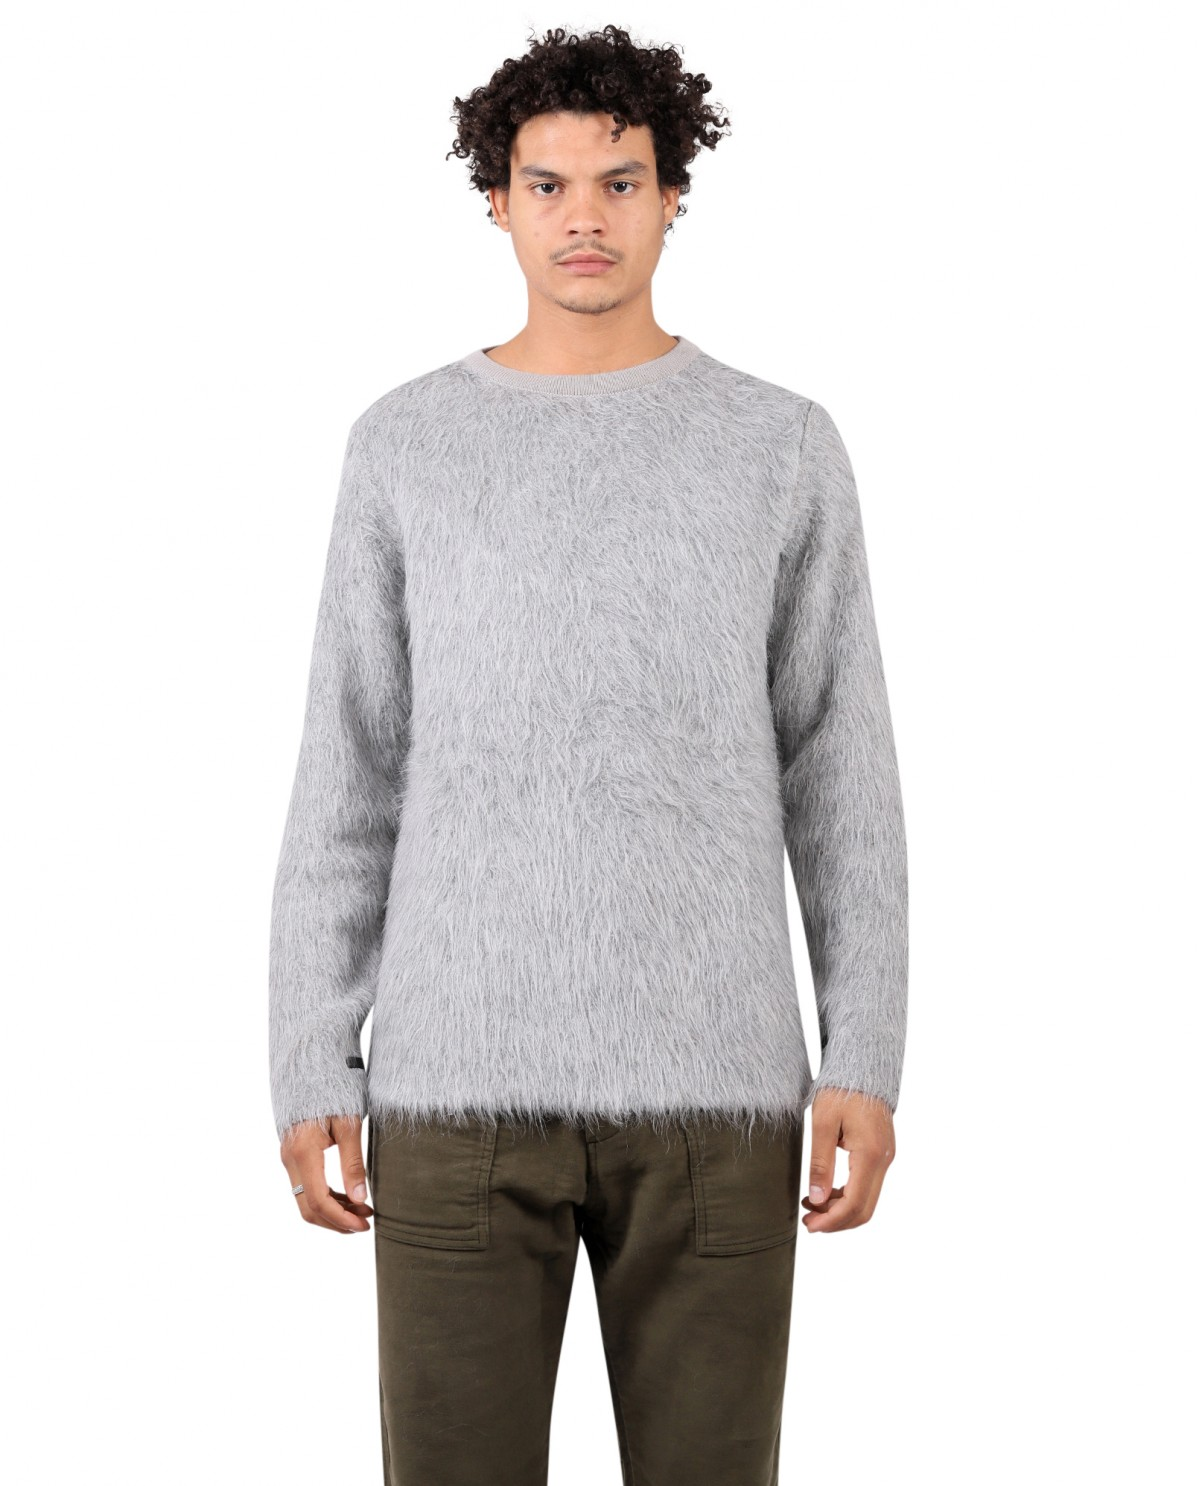 The Inoue Brothers grey Suri sweater